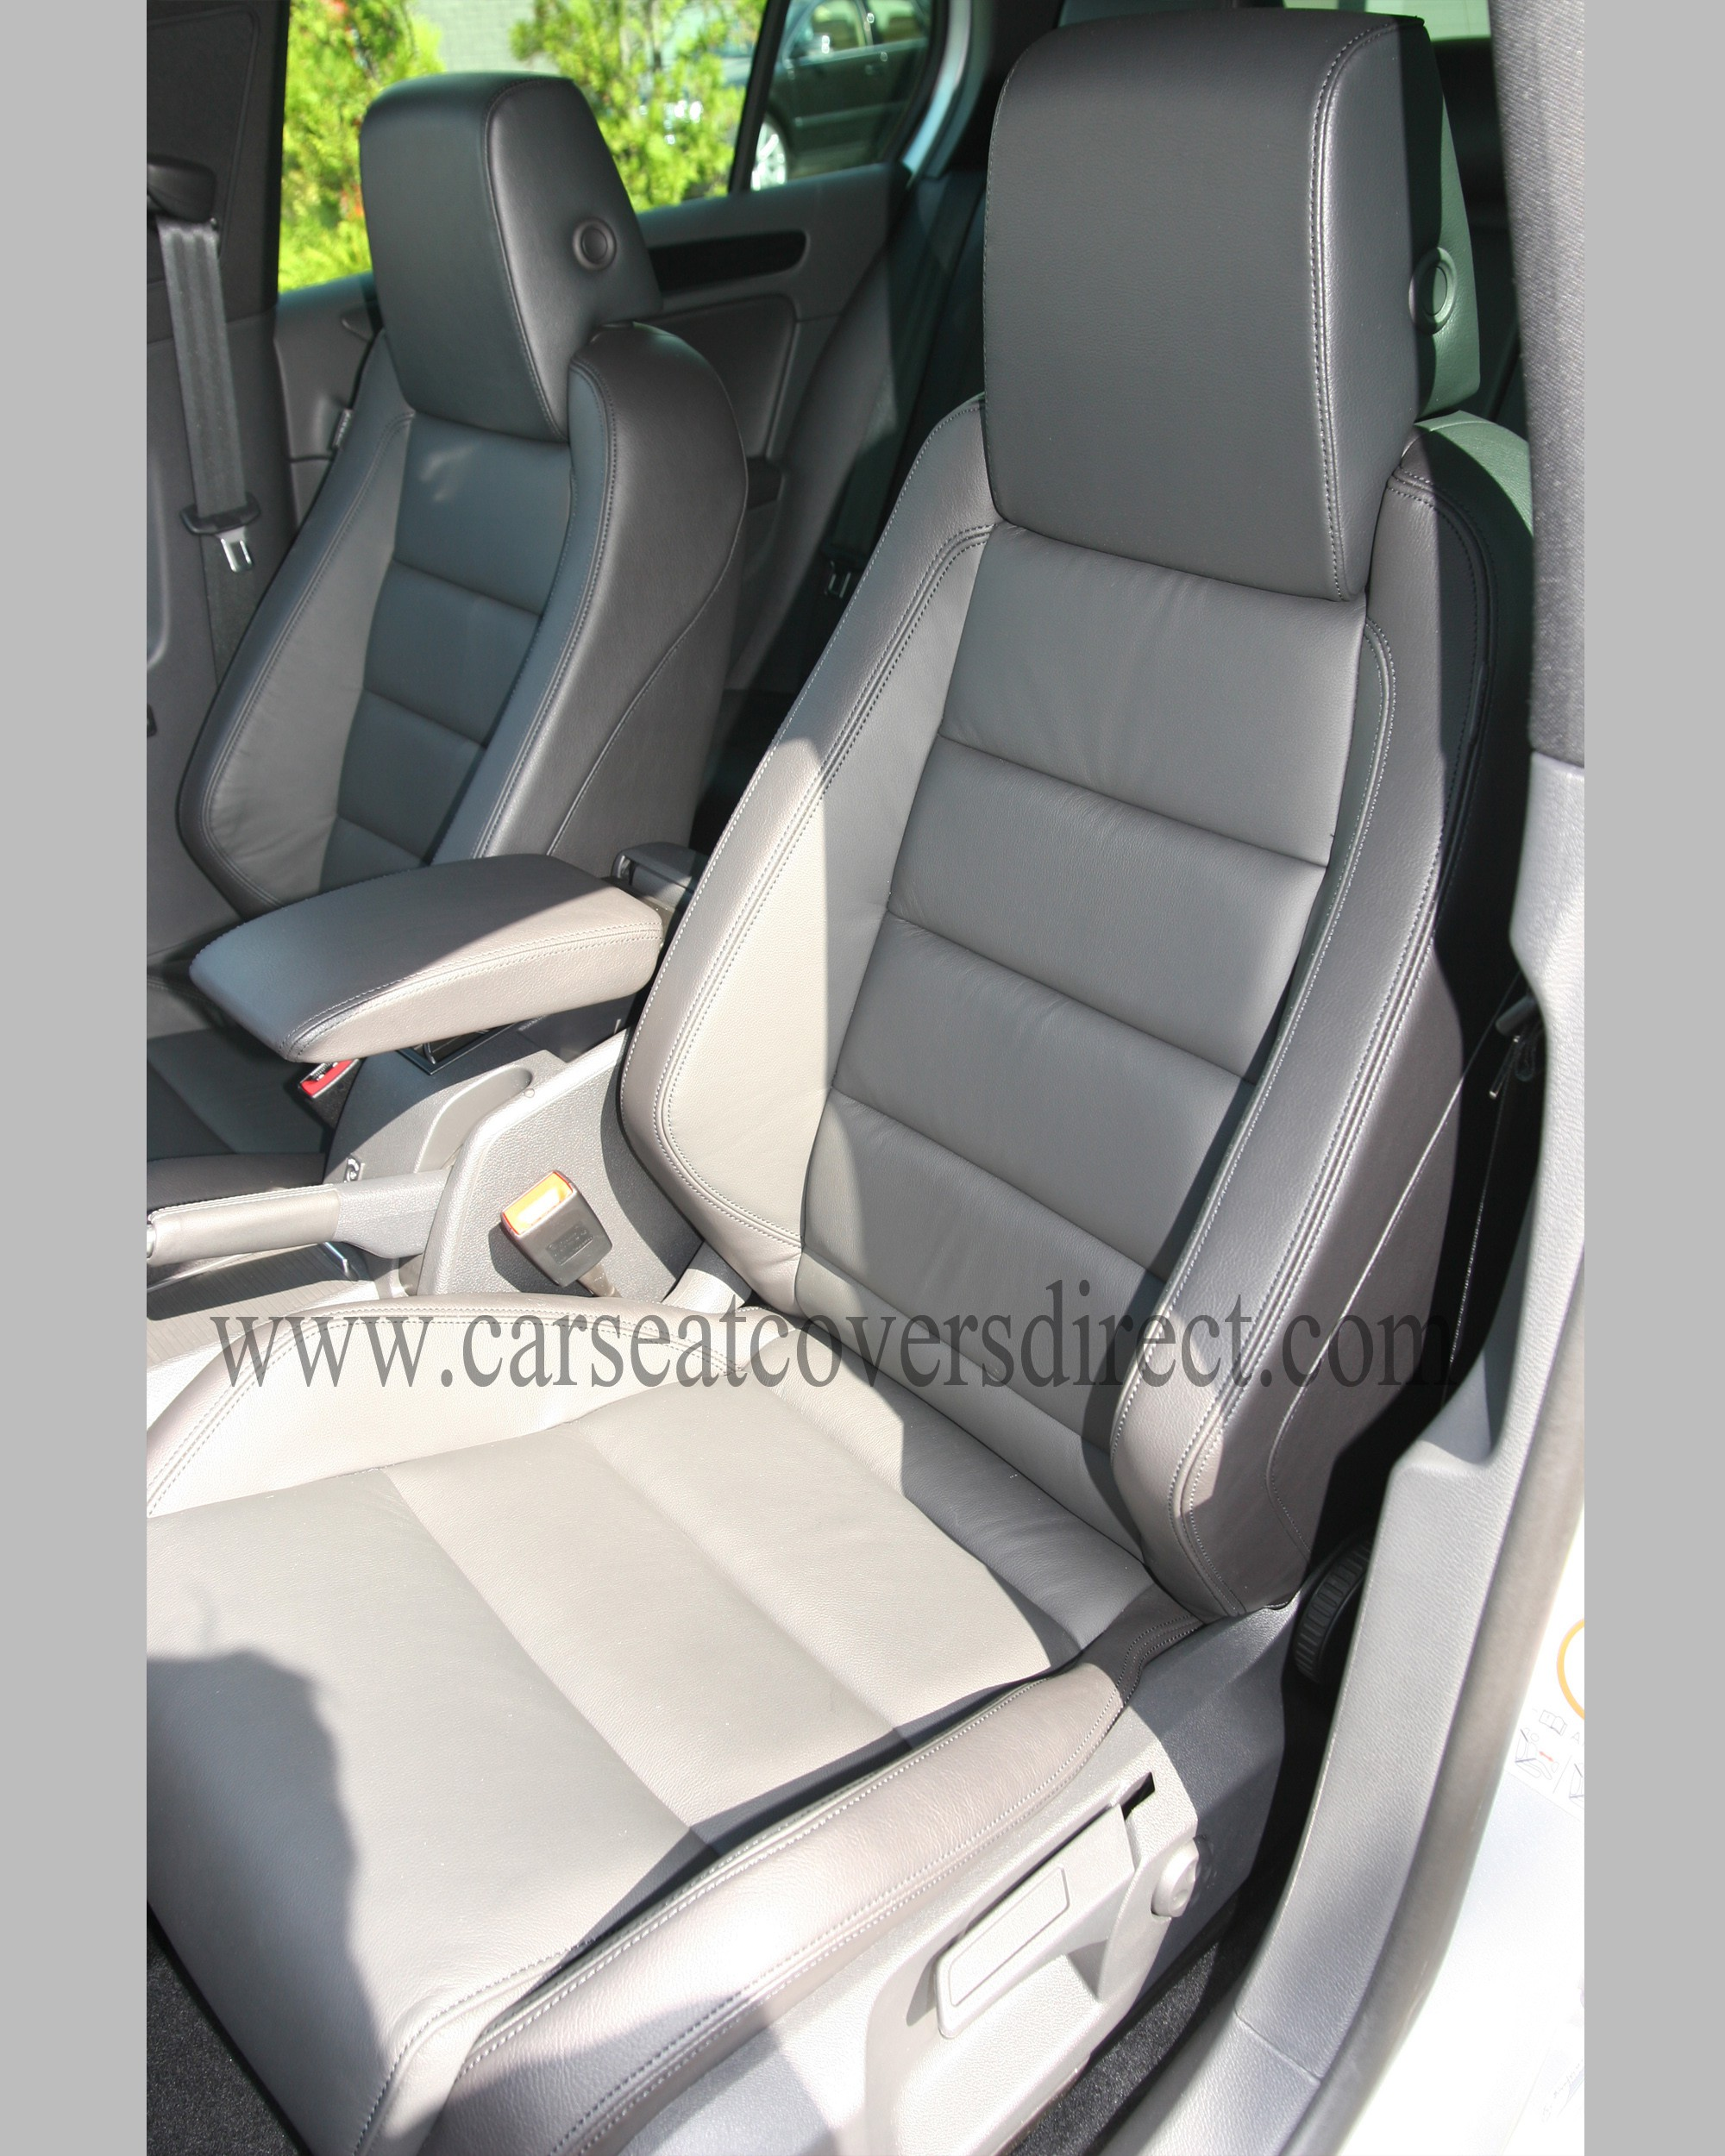 Passenger seat with leather retrim